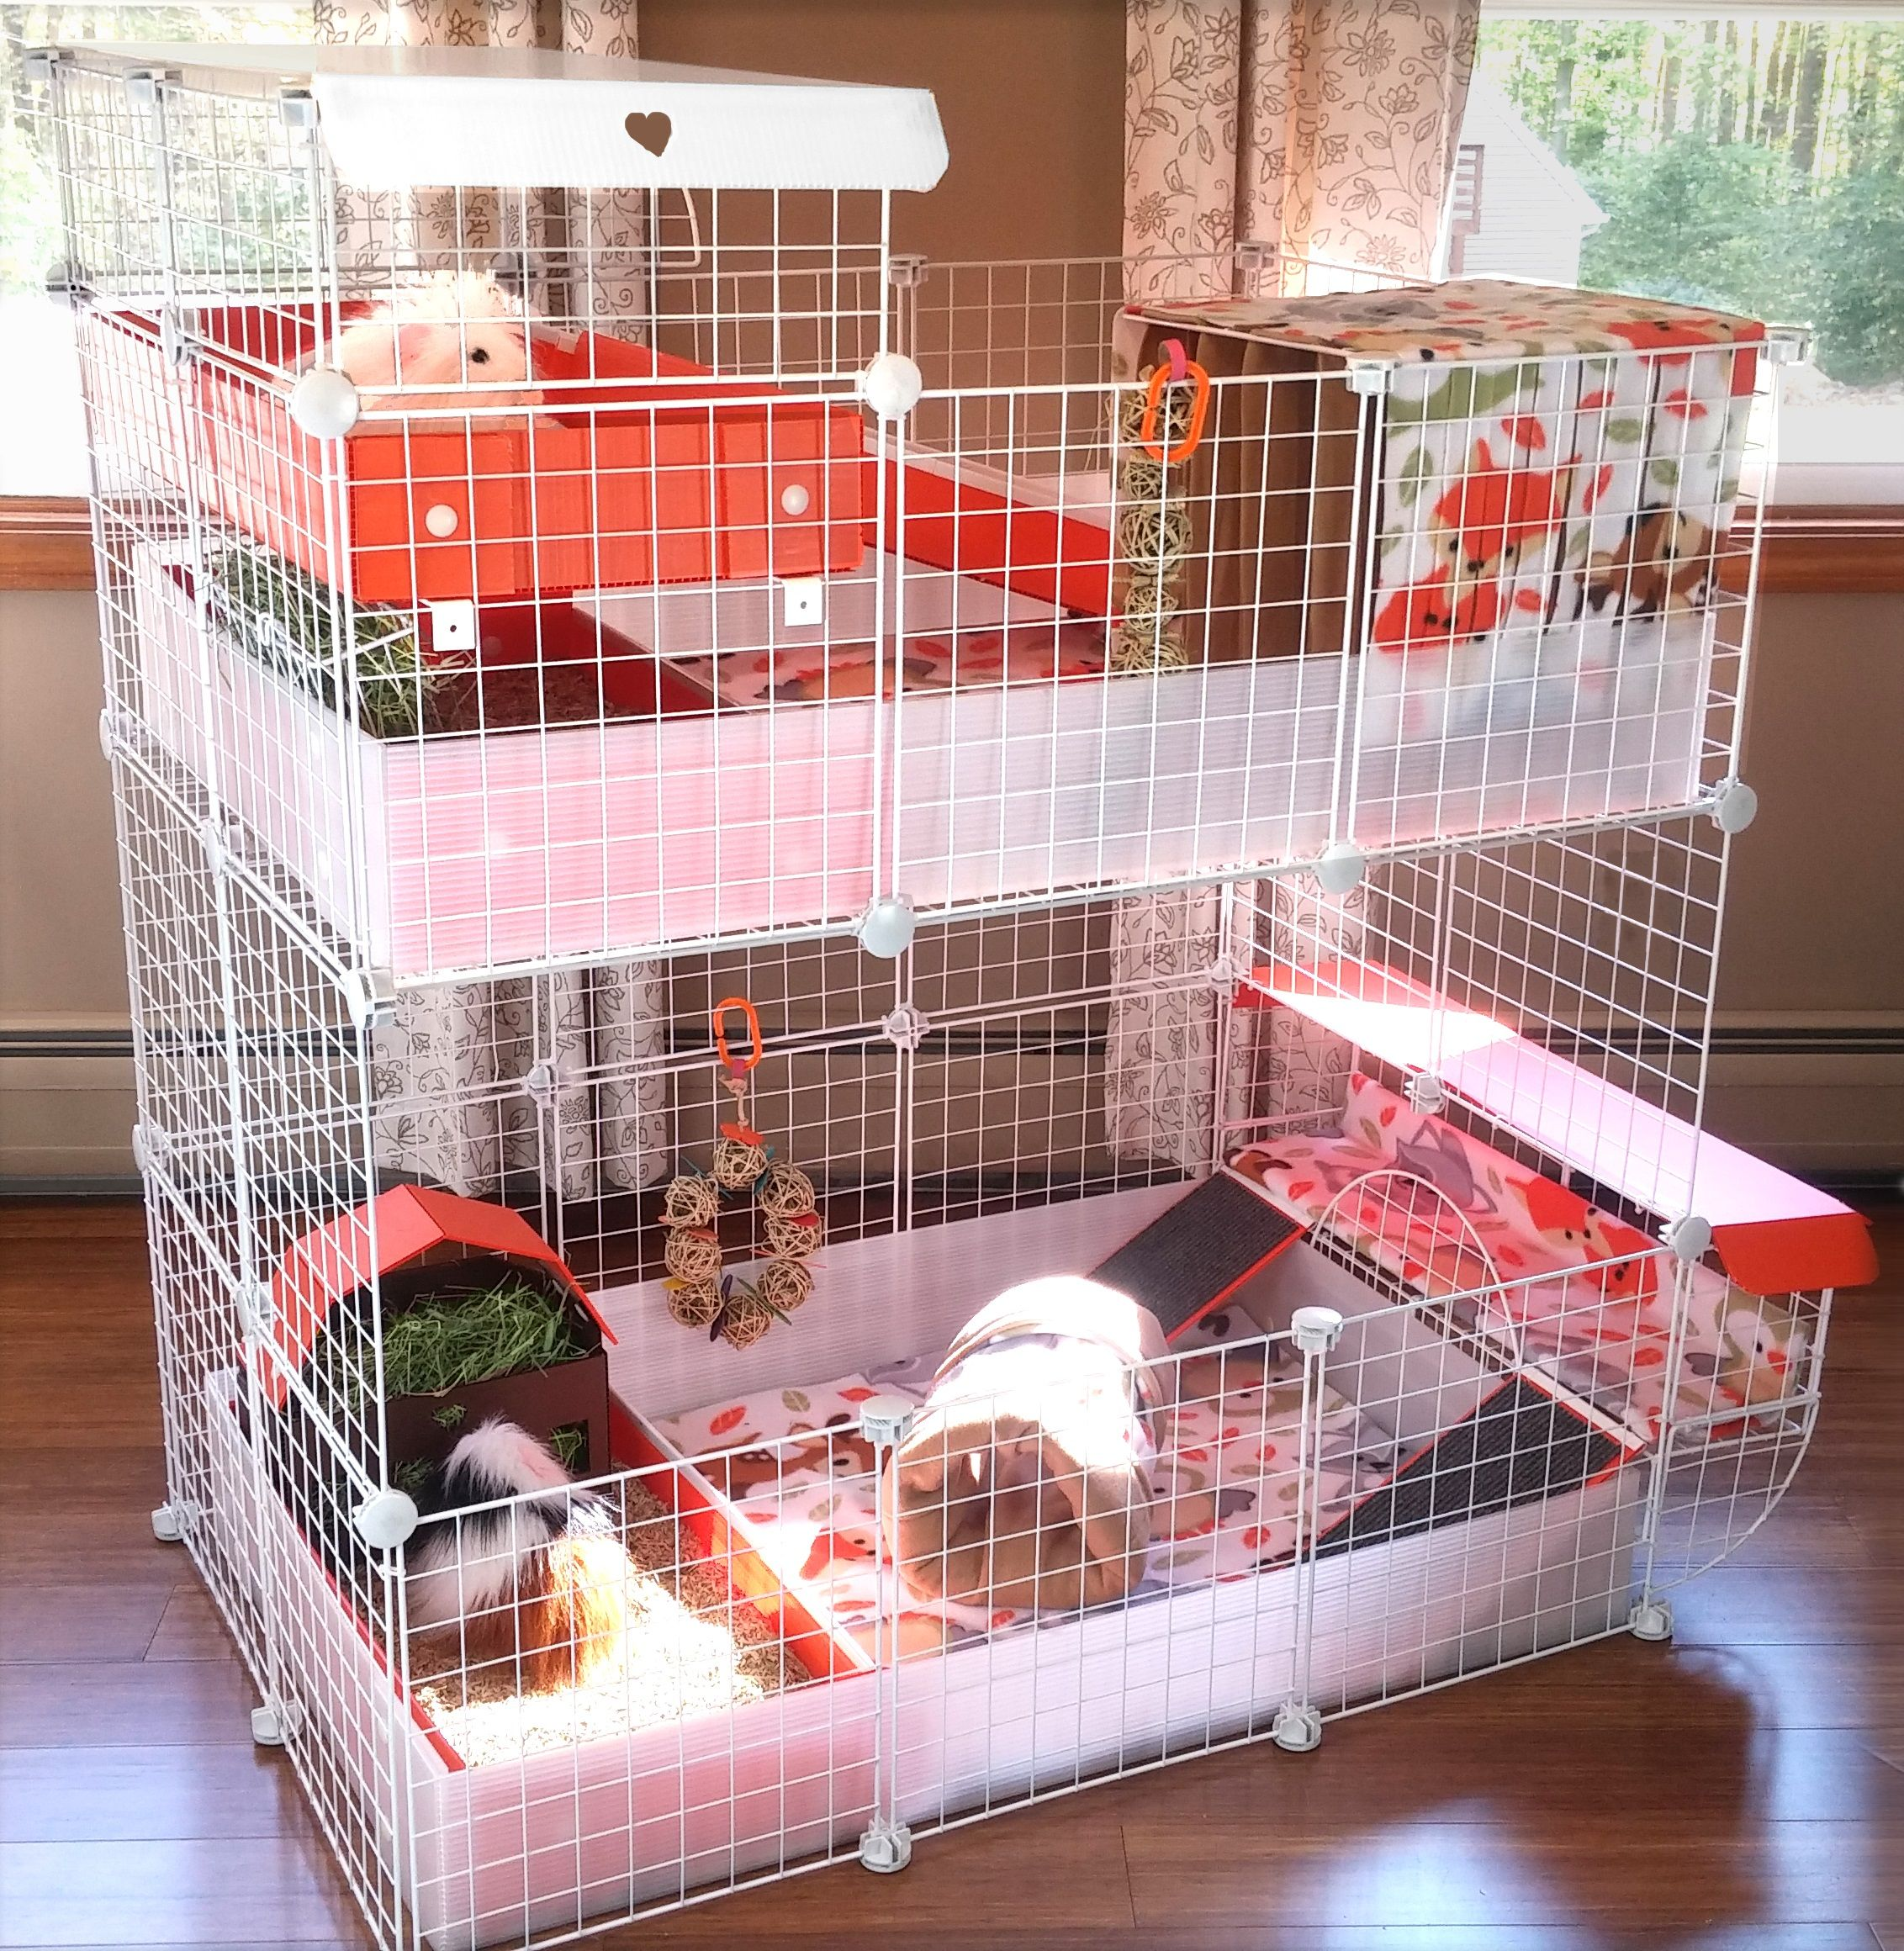 cage peeing in a in from rabbit Deter spot